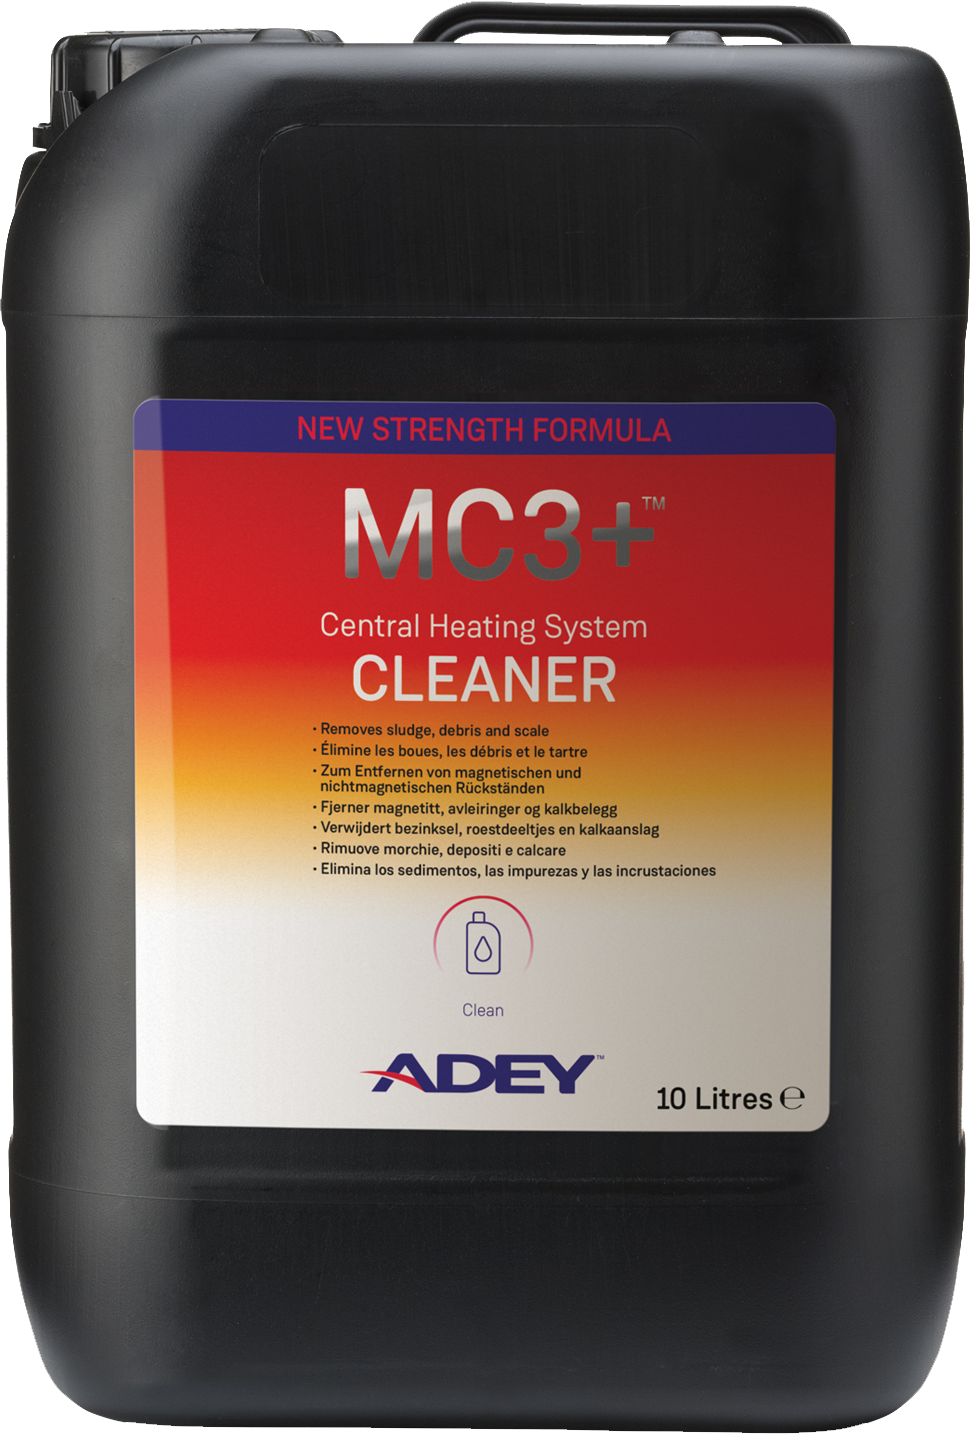 MC3+ Cleaner